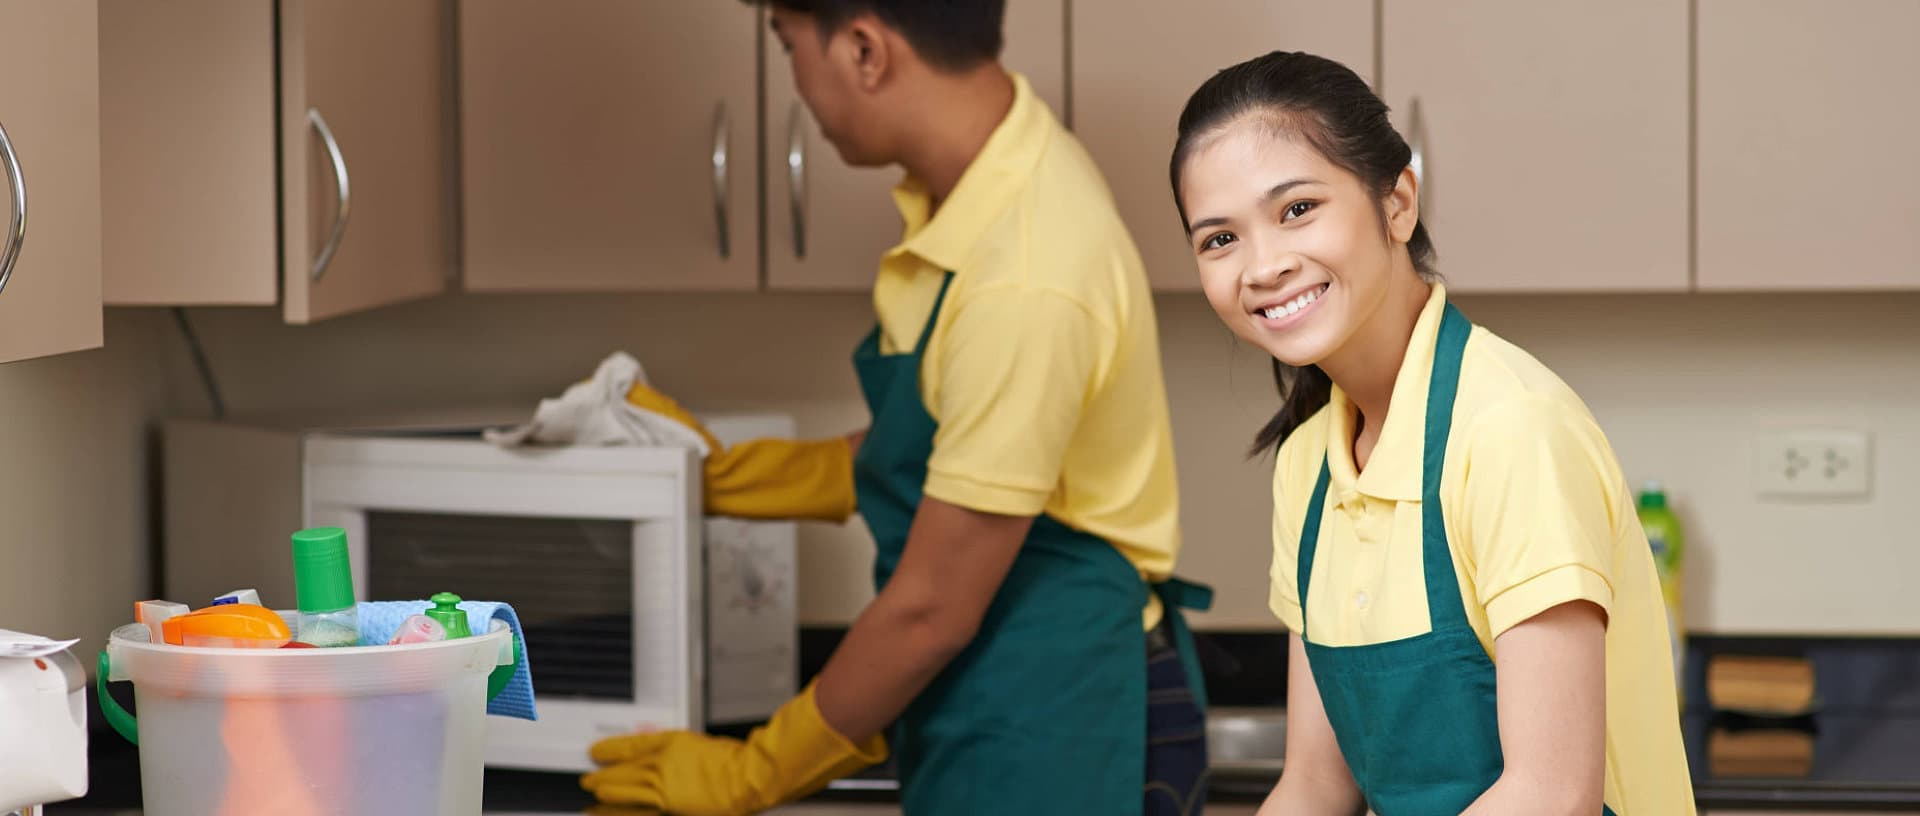 smiling woman cleaning the kitchen